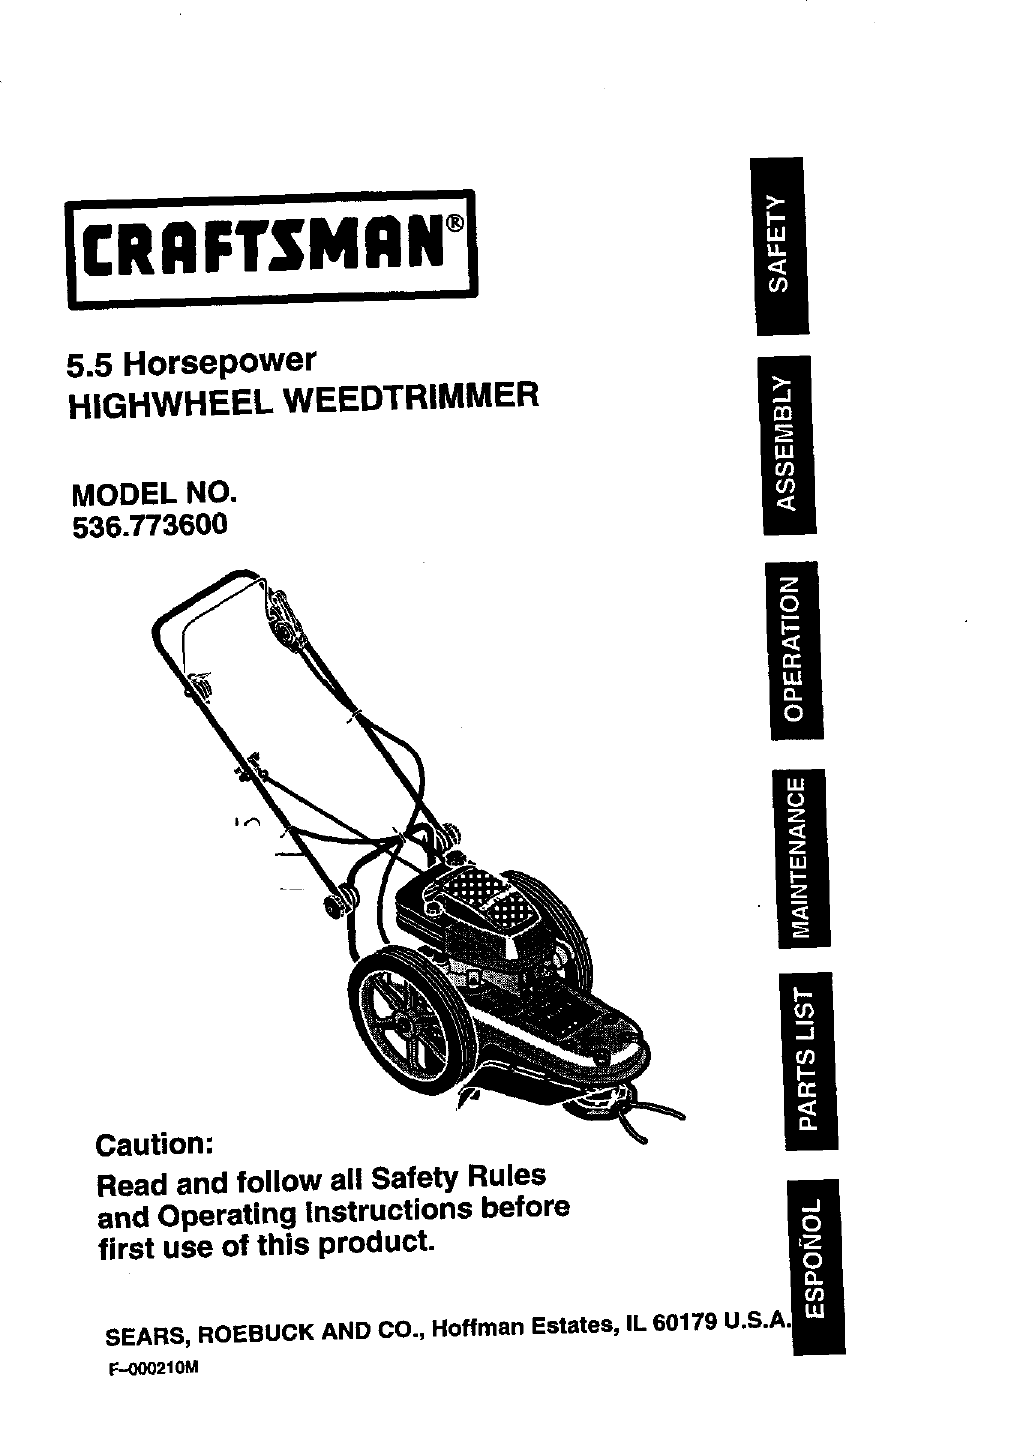 Craftsman 536773600 User Manual 5.5HP HIGHWHEEL